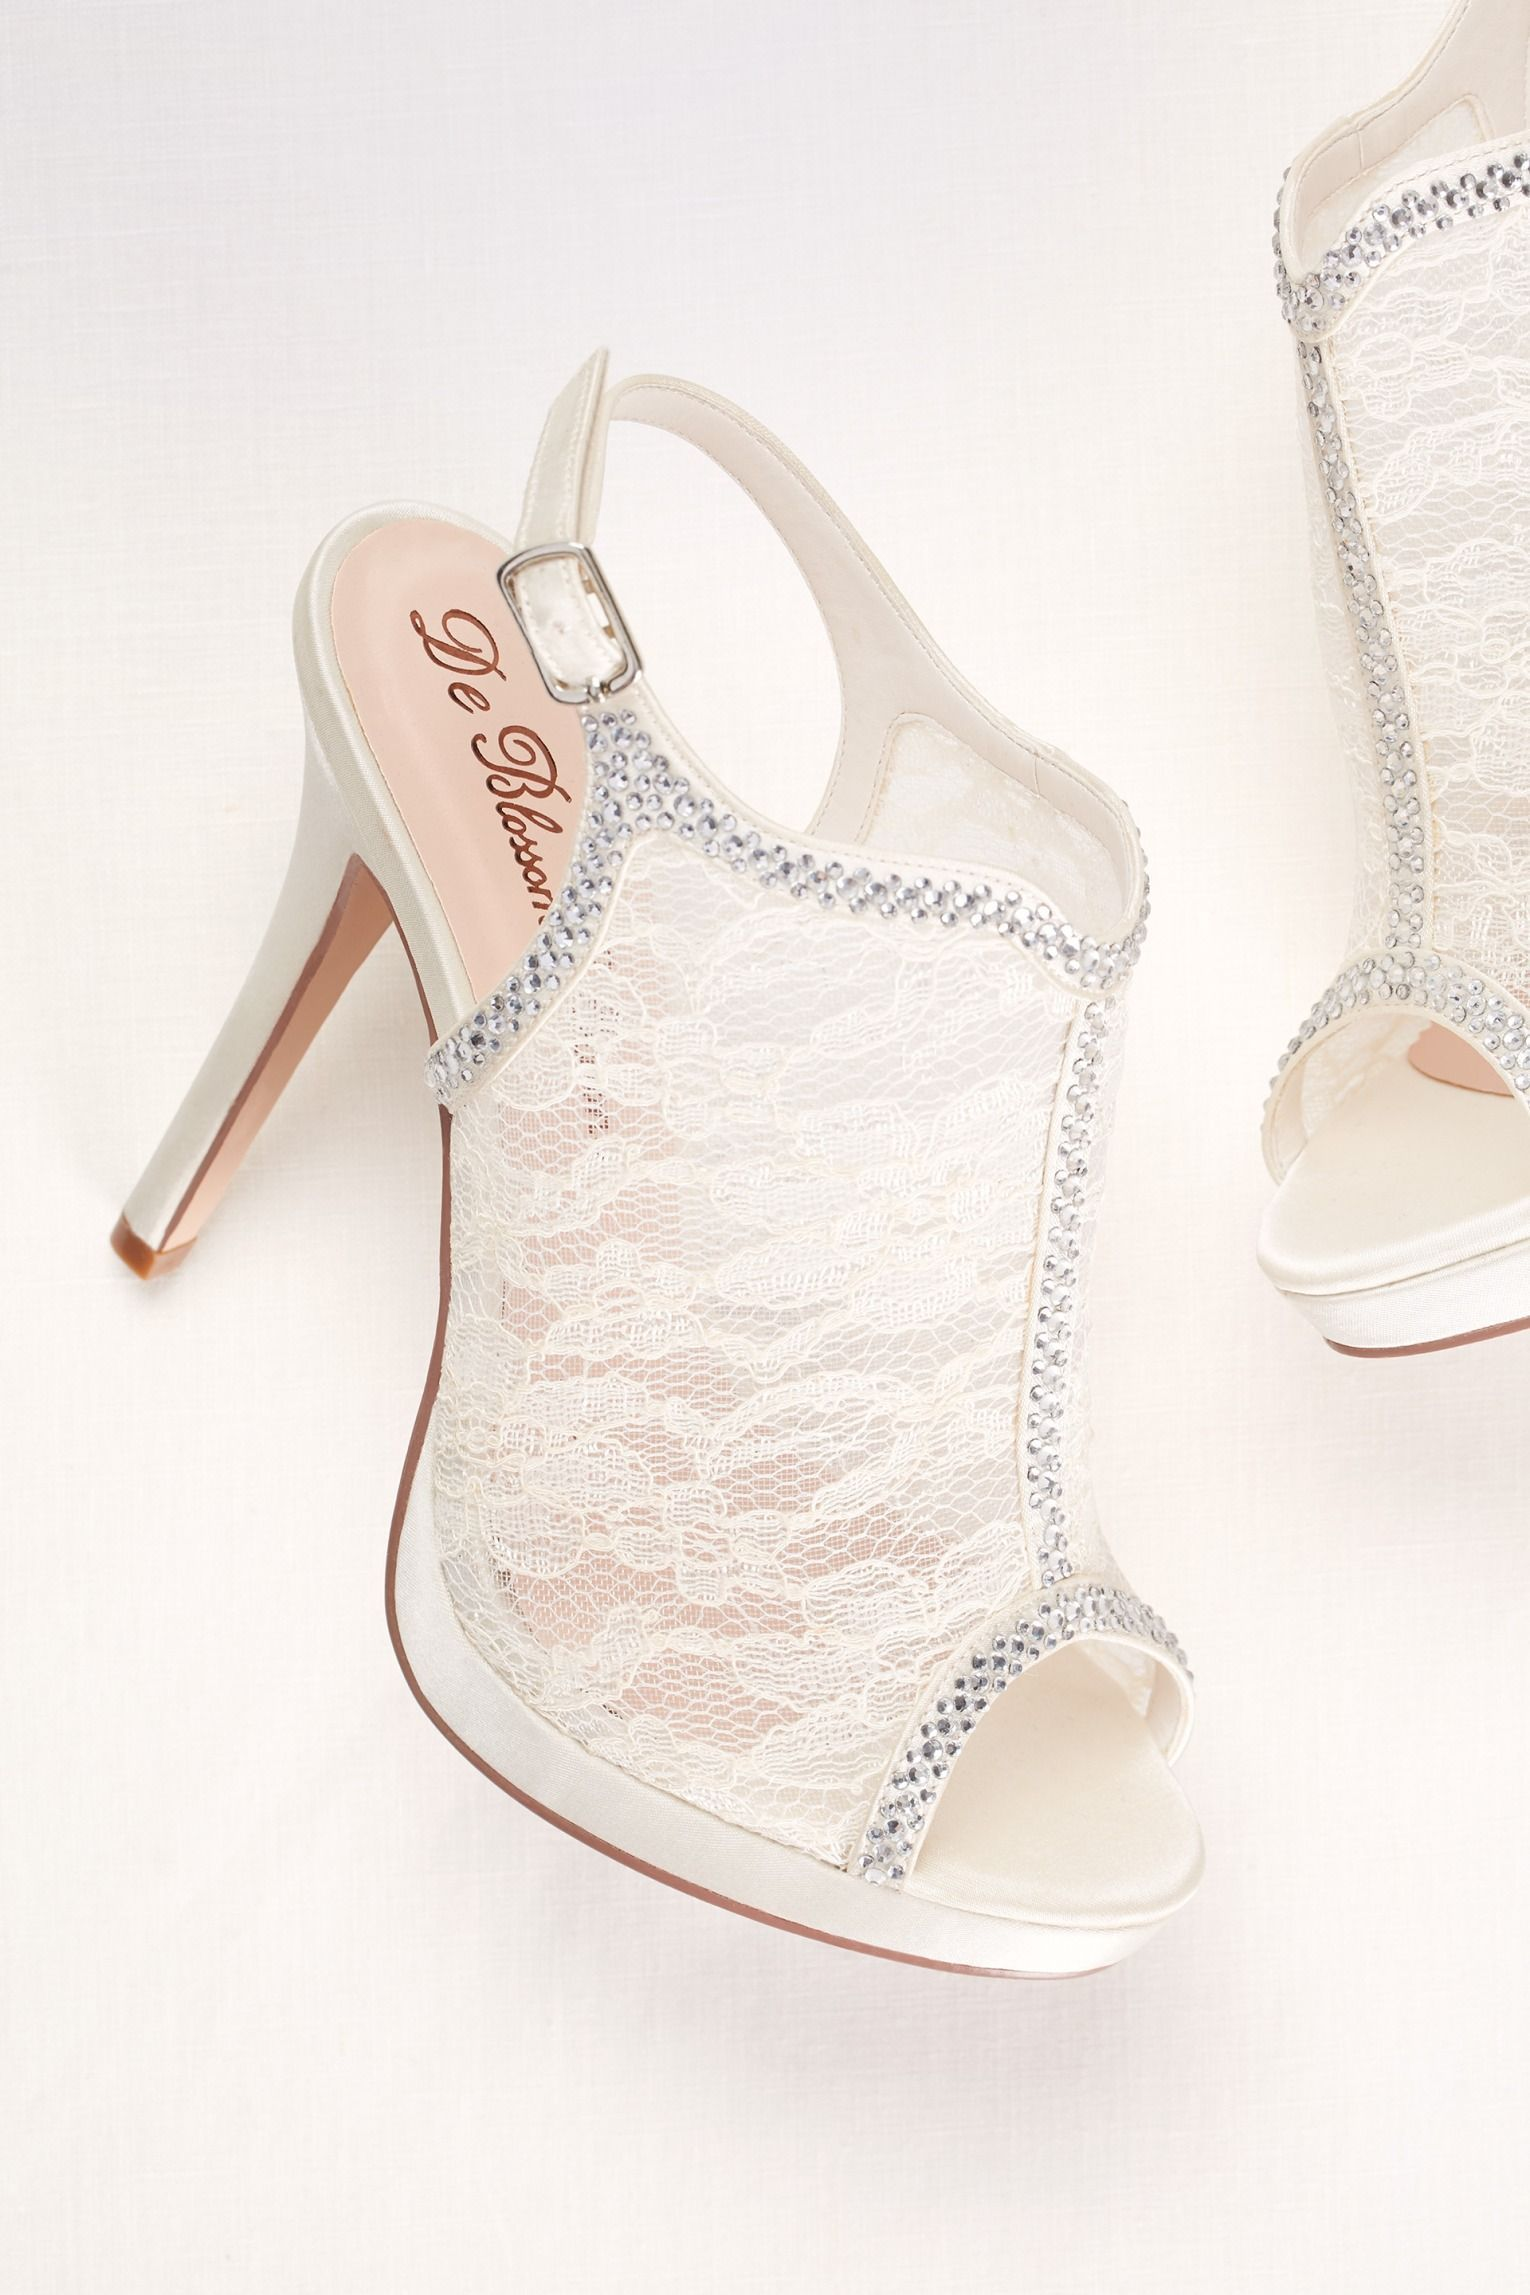 31f8cb6307b The perfect wedding shoe. Floral inspired lace and modern crystals ...